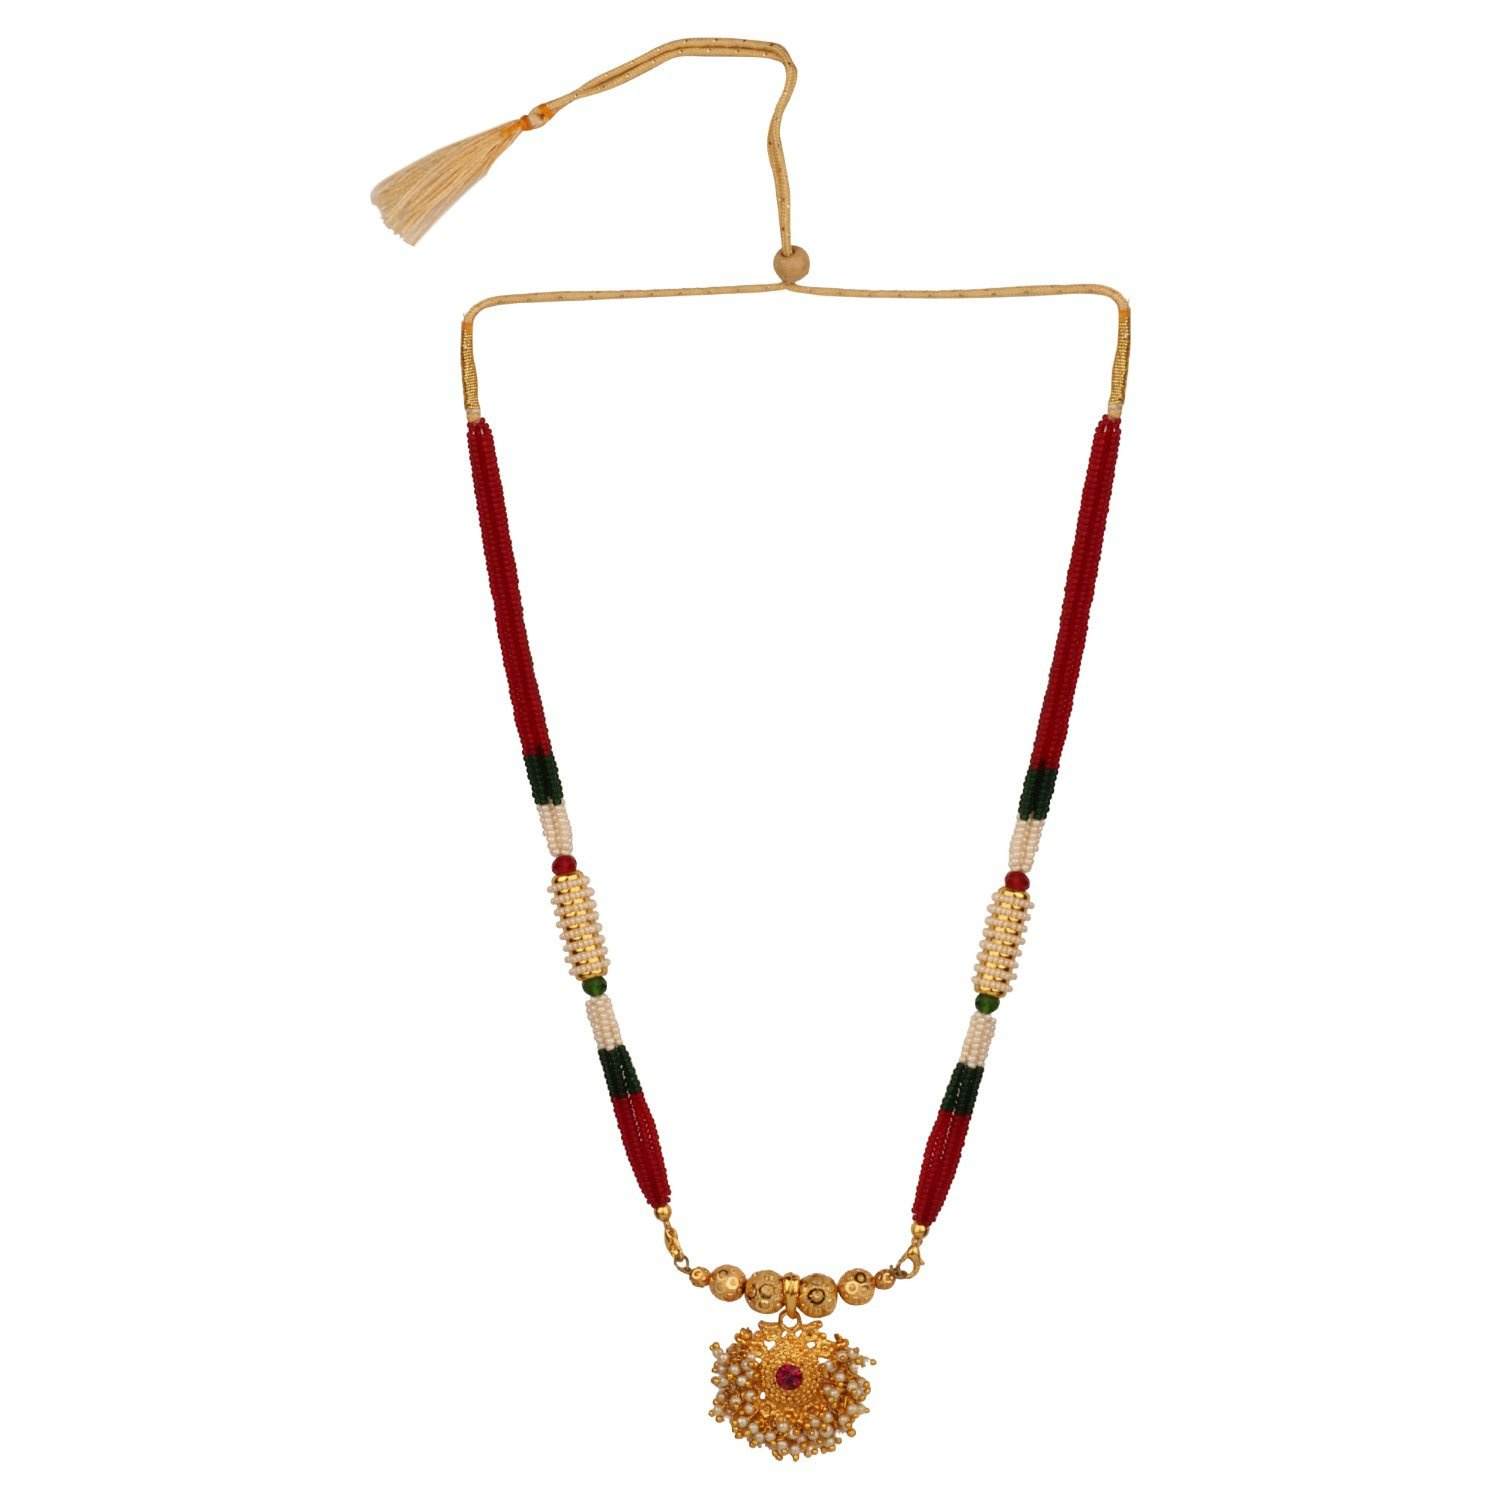 Efulgenz Indian Traditional 14 K Gold Plated Multicolor Beaded Pearl Temple Necklace Jewelry for Women Jaipur Art Jewellery MNT304